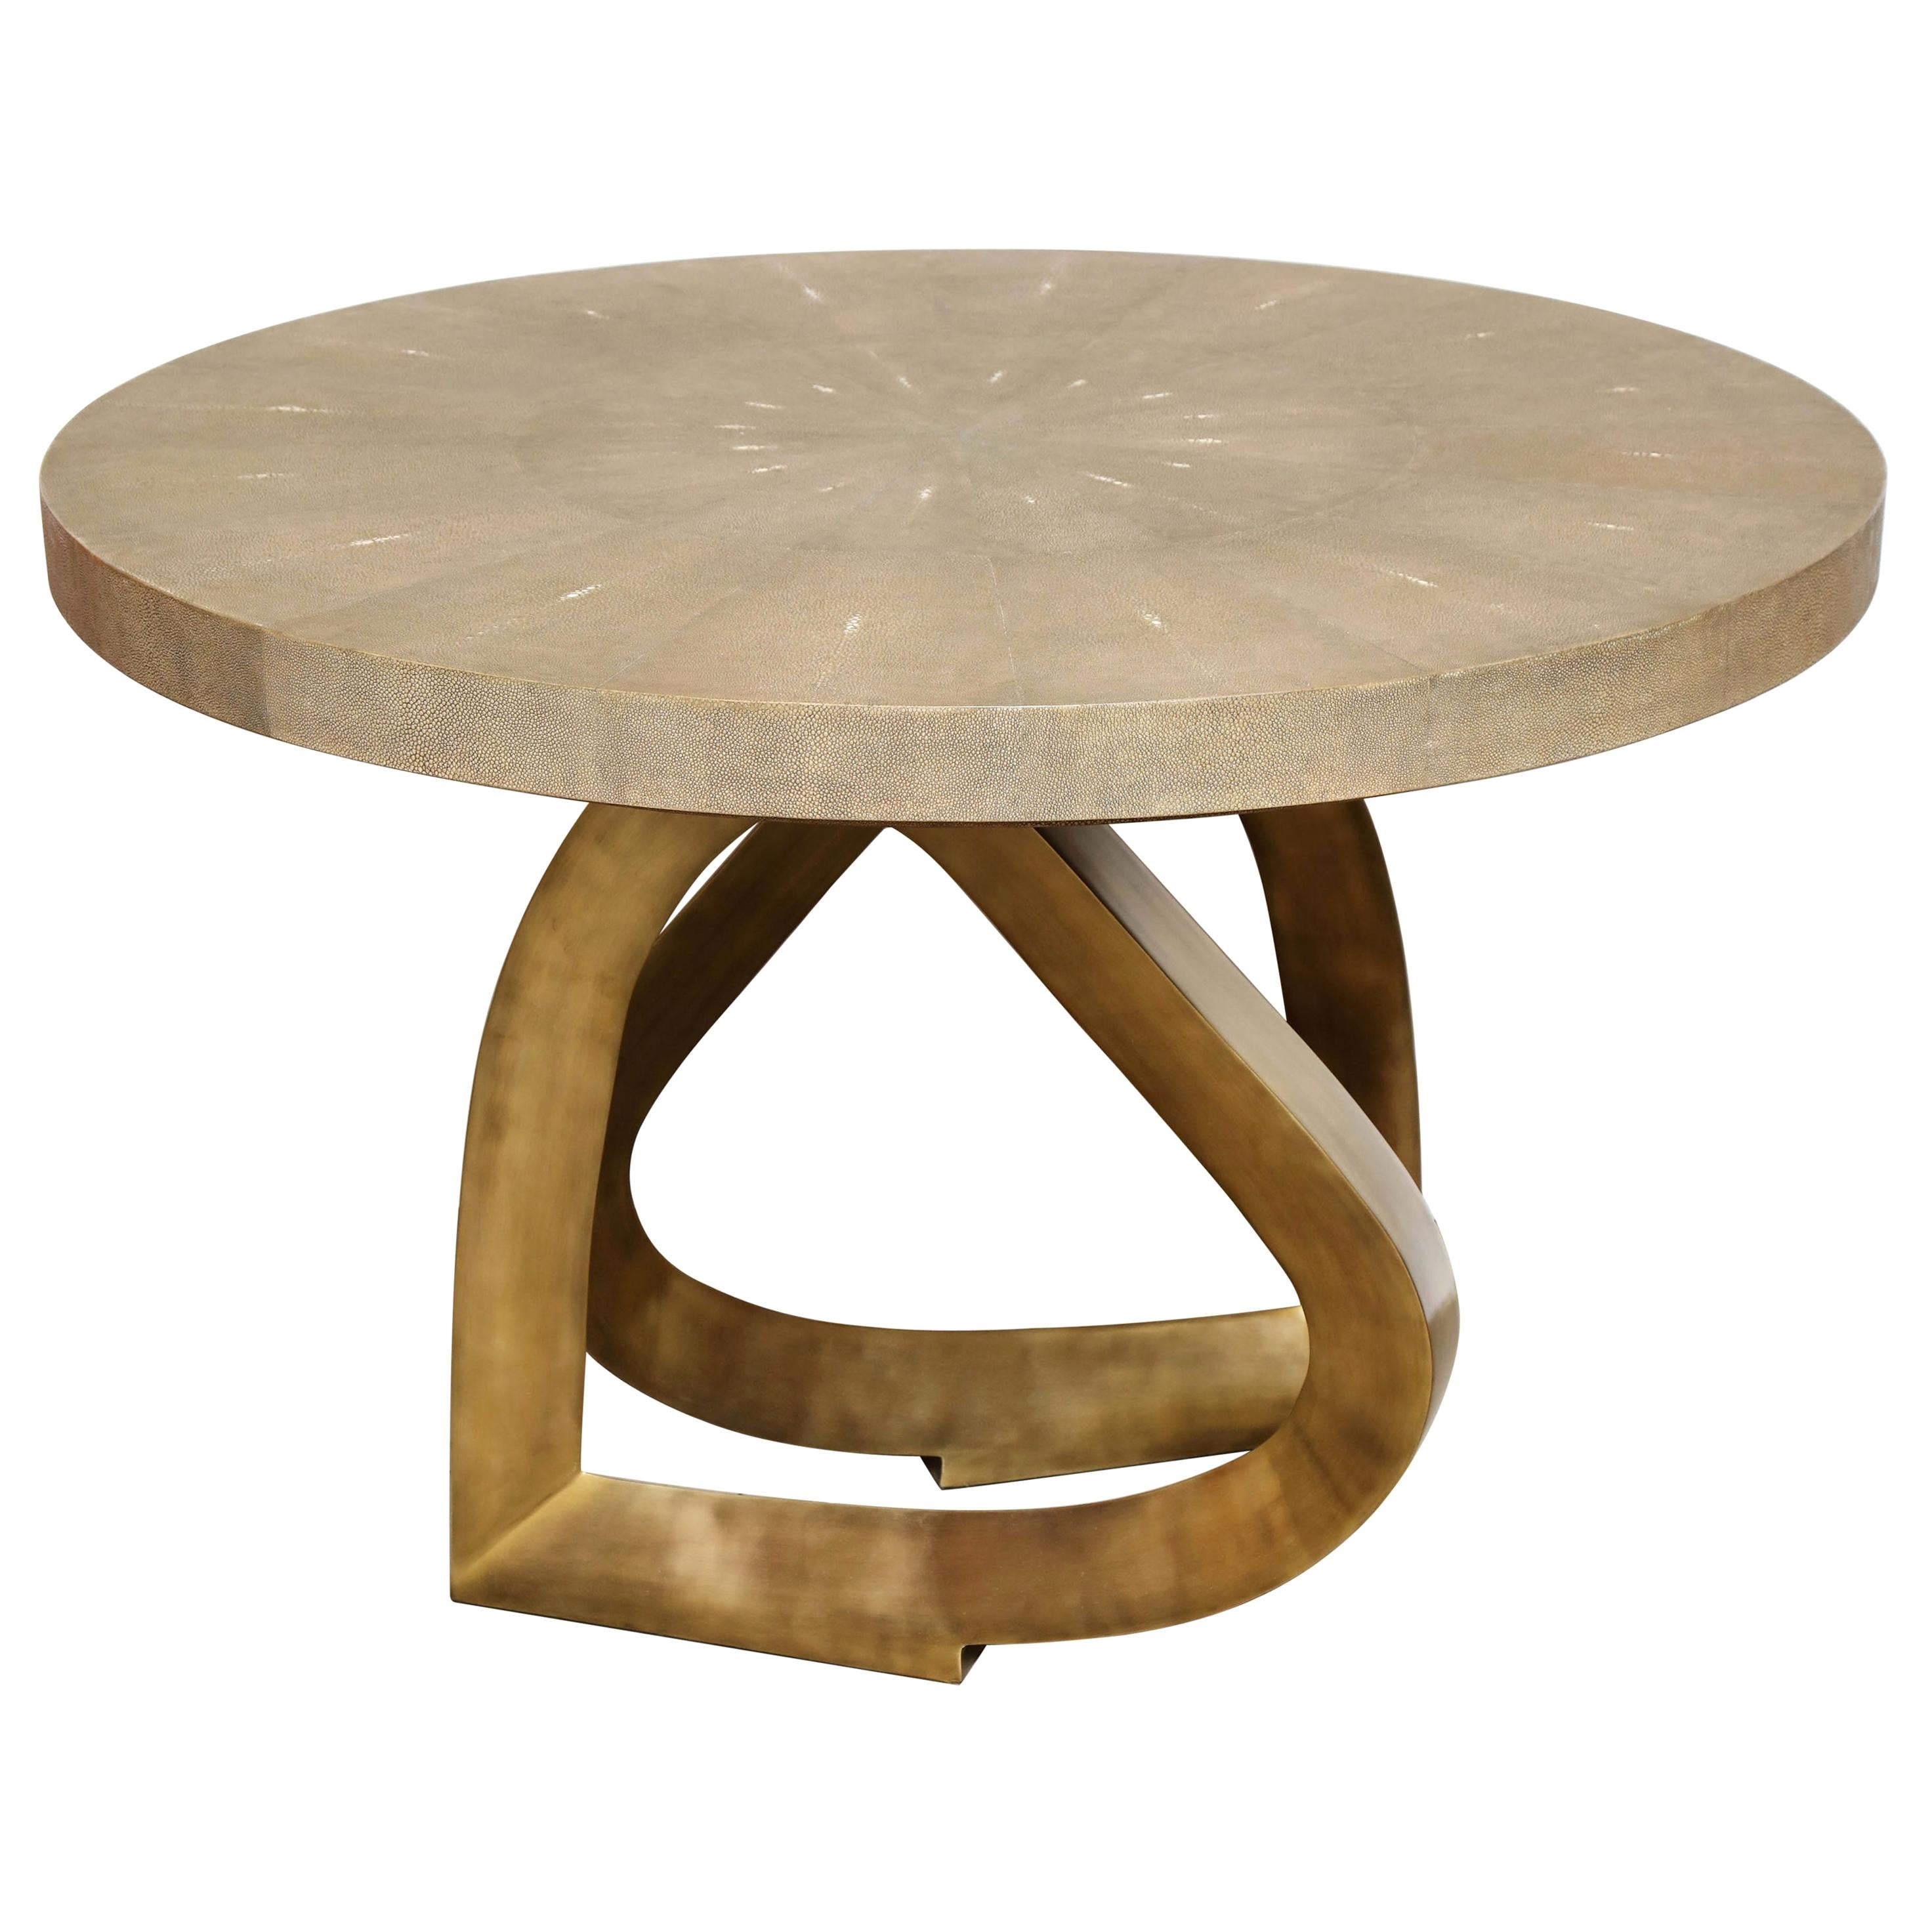 Dining Room Table, Shagreen with Bronze Base, Khaki Color Shagreen